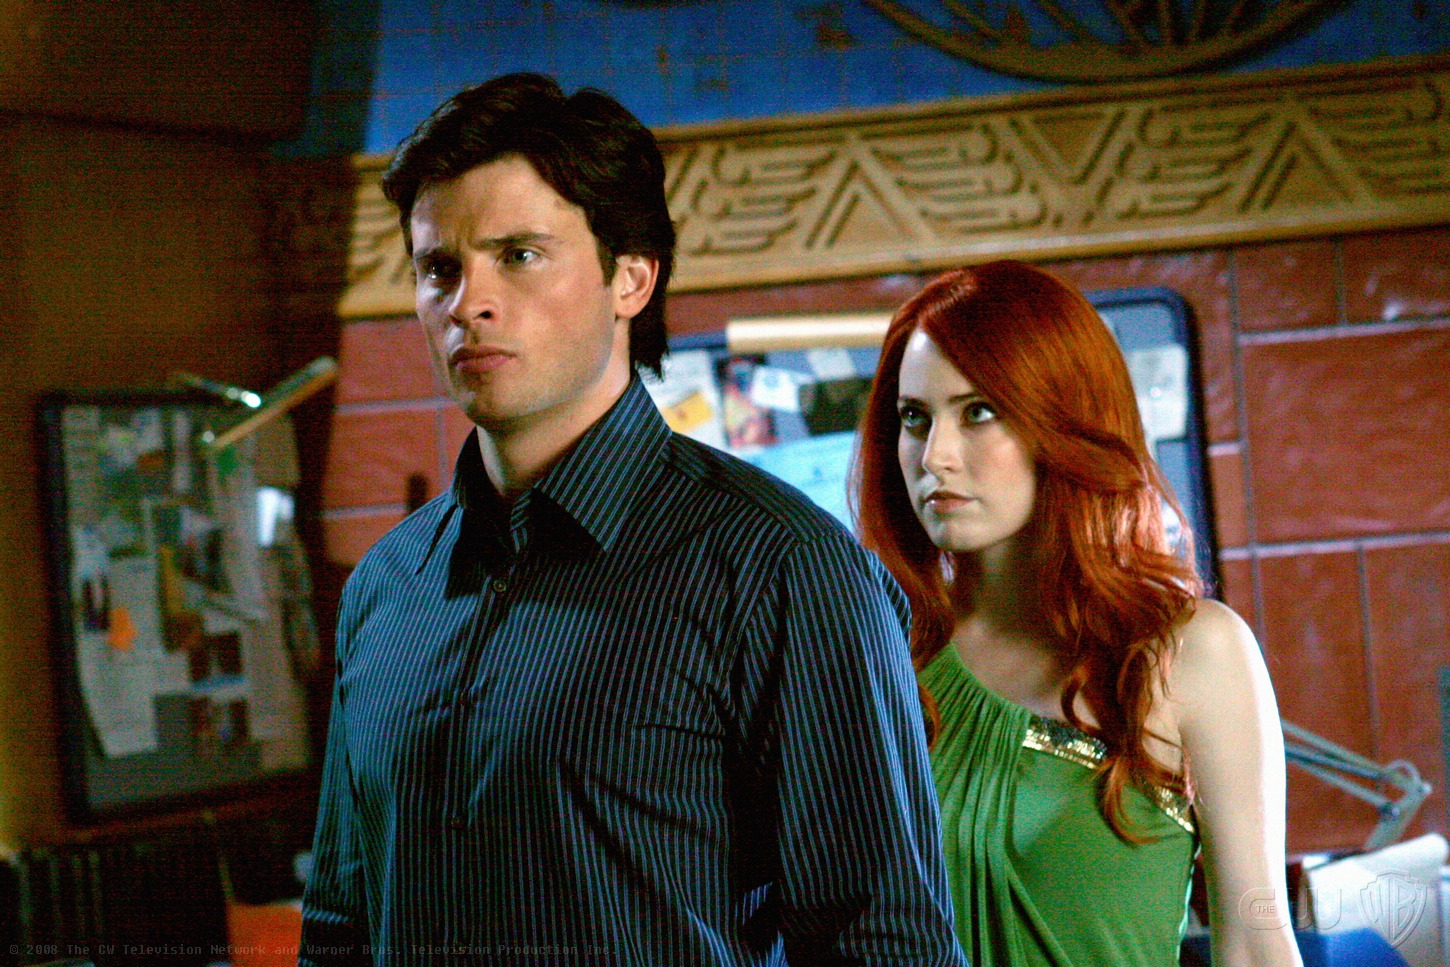 Smallville (TV Series) Episode: Instinct